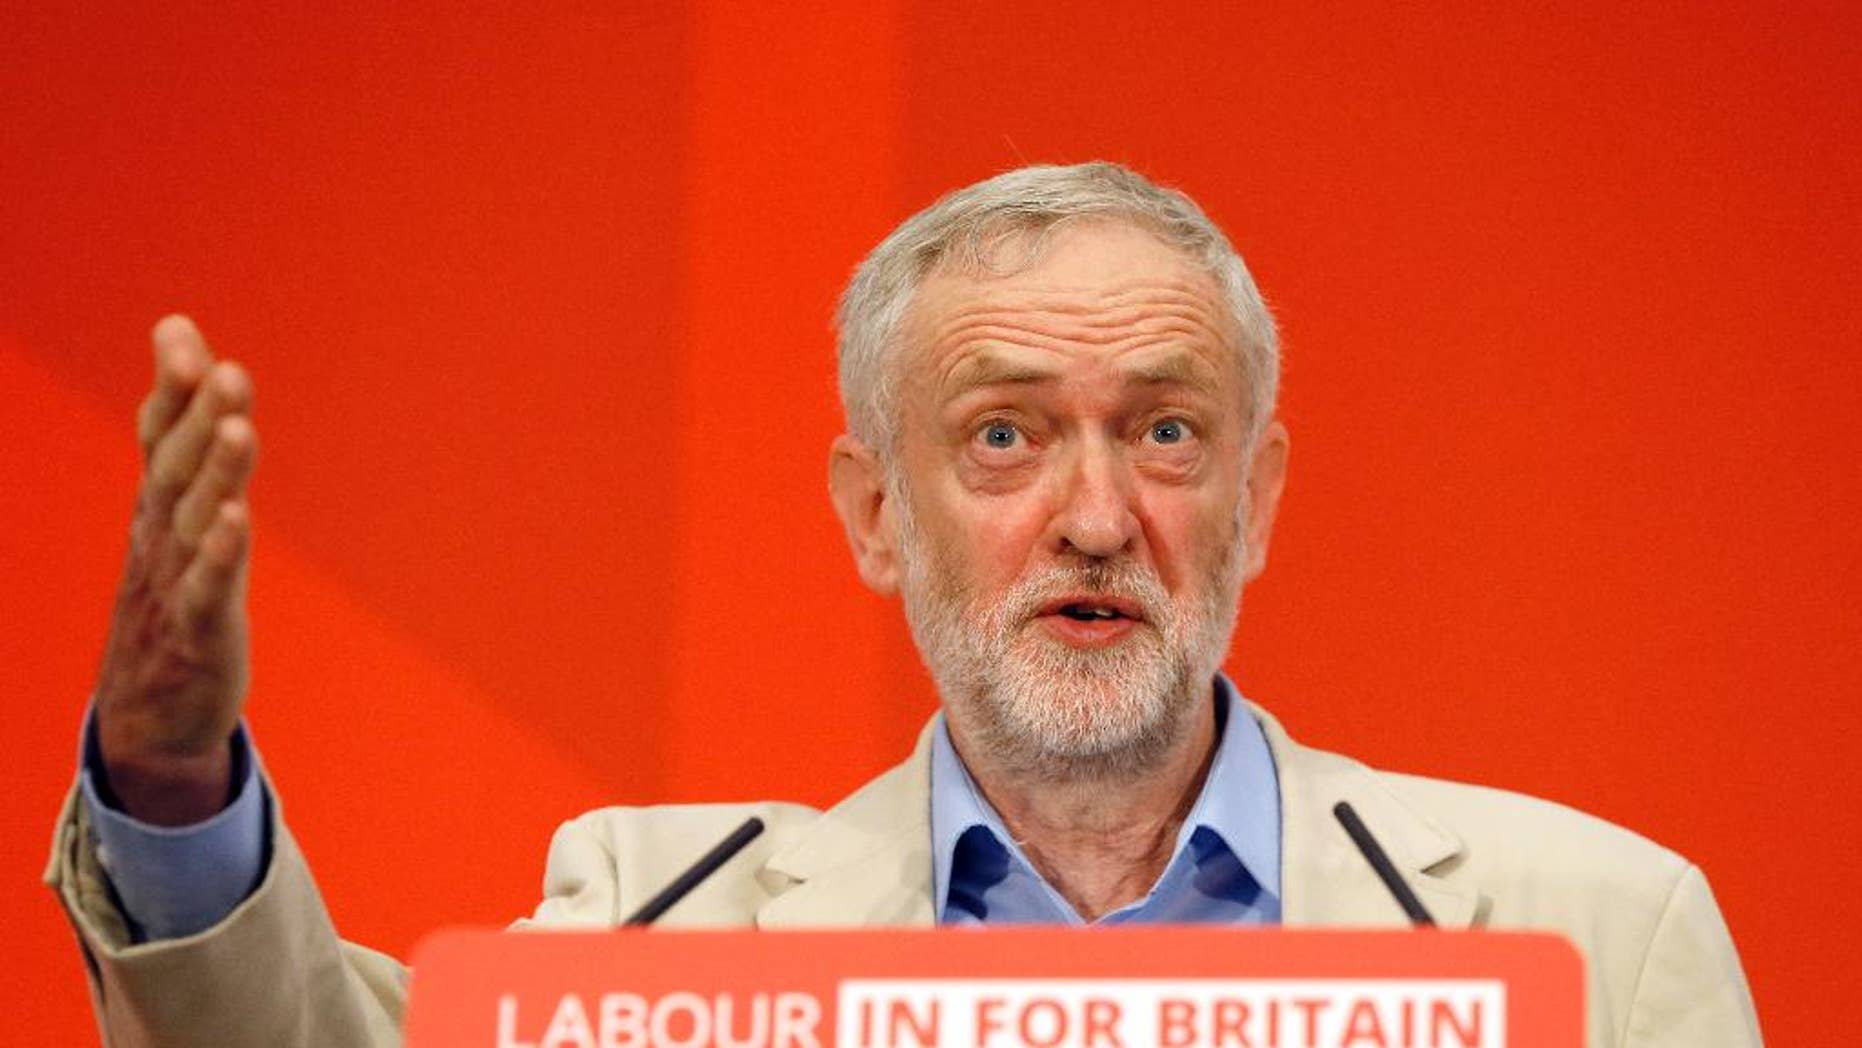 April 14, 2016: Jeremy Corbyn, leader of Britain's Labour Party, delivers a speech outlining Labour's position on the European referendum in London.